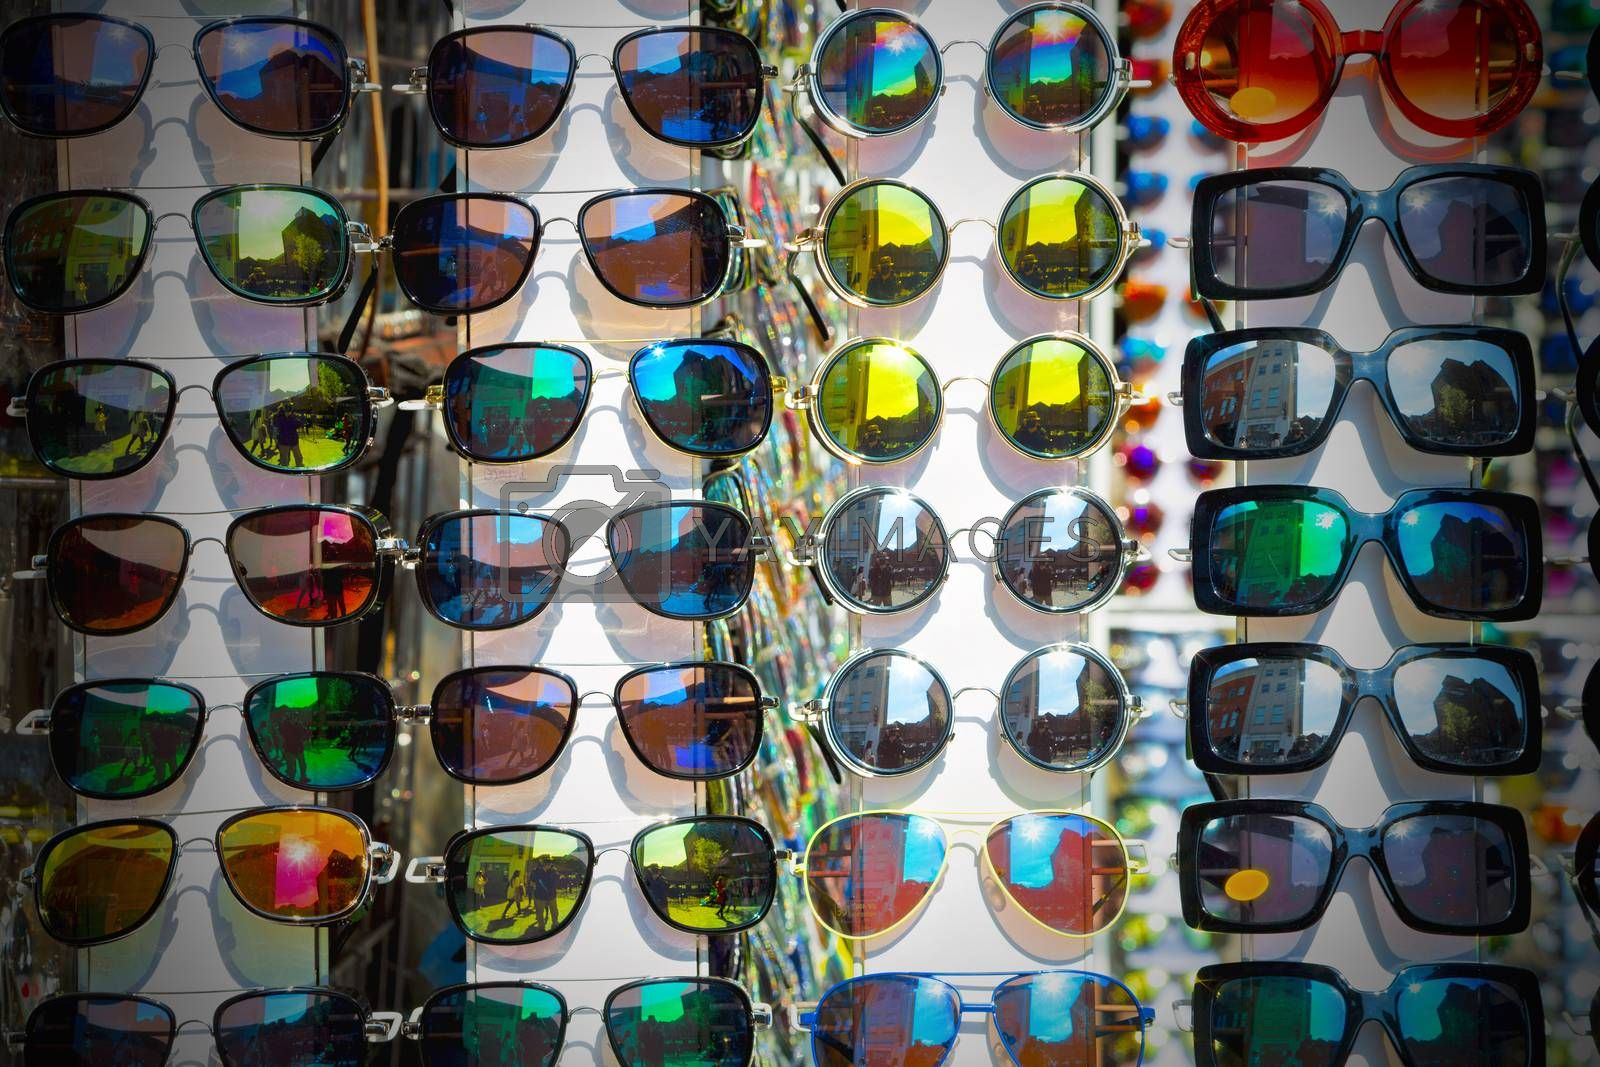 in london glass and sunglasses in the light and reflex by lkpro